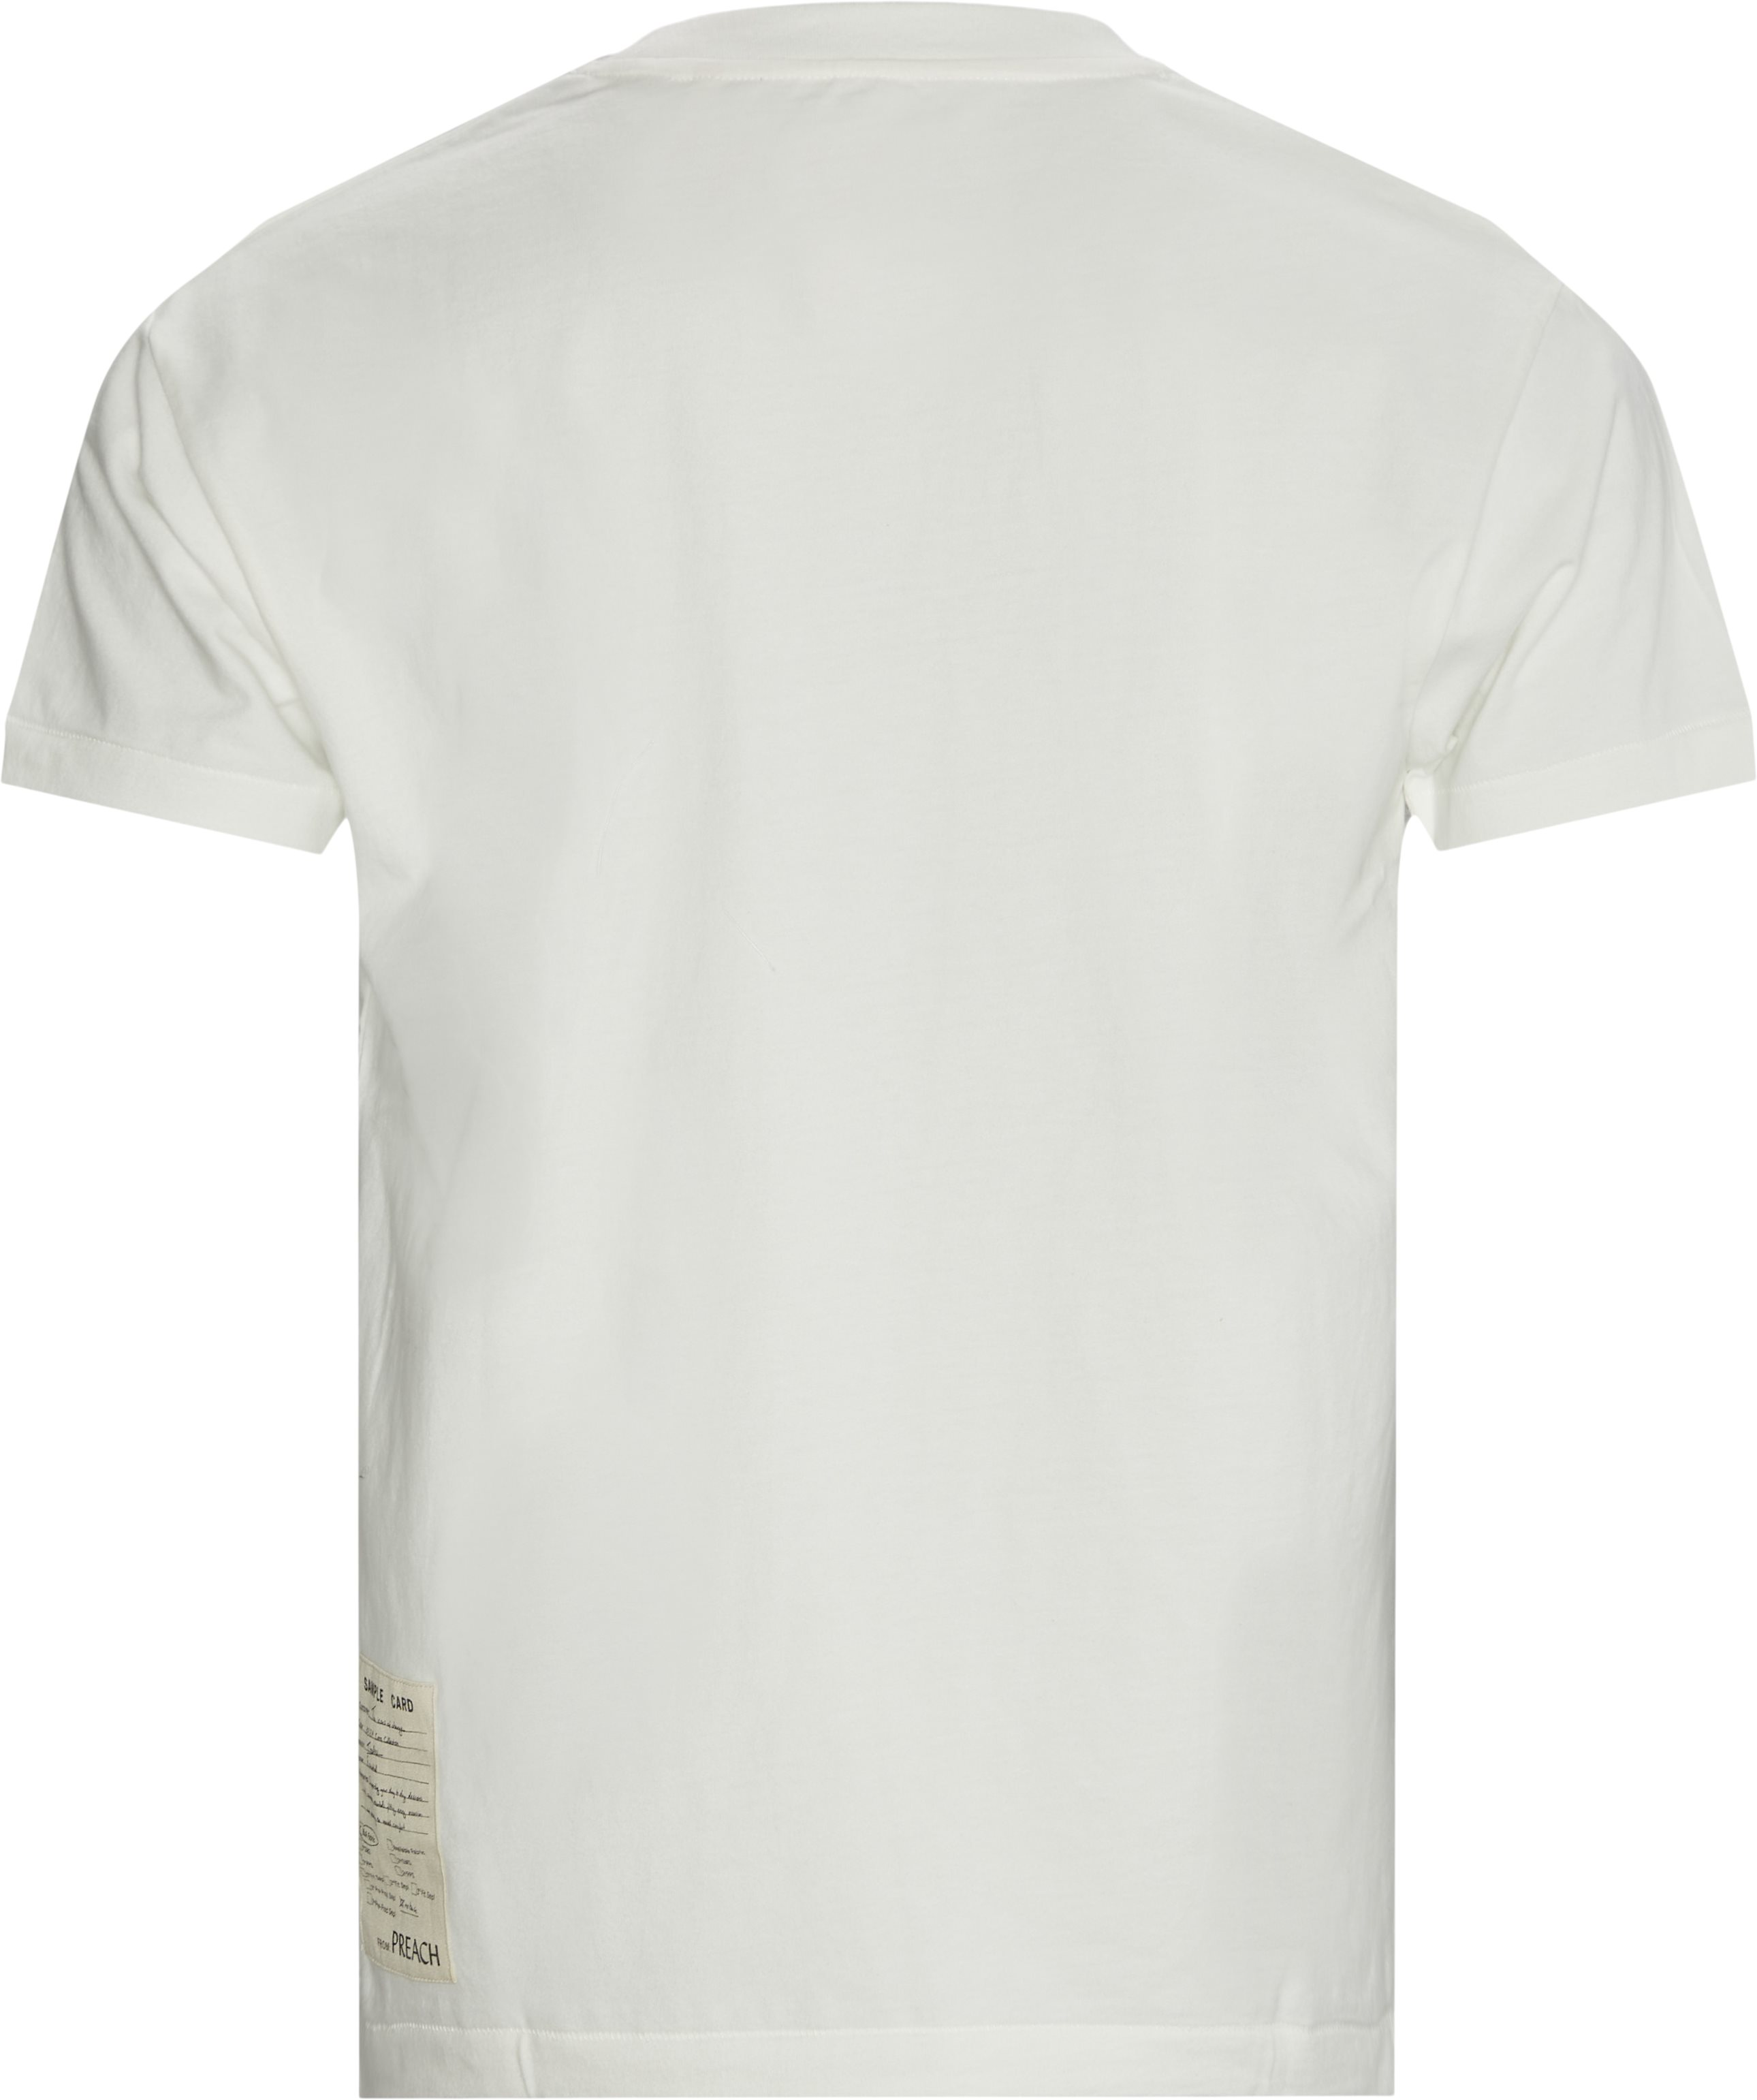 Essential Tee - T-shirts - Oversized - Hvid